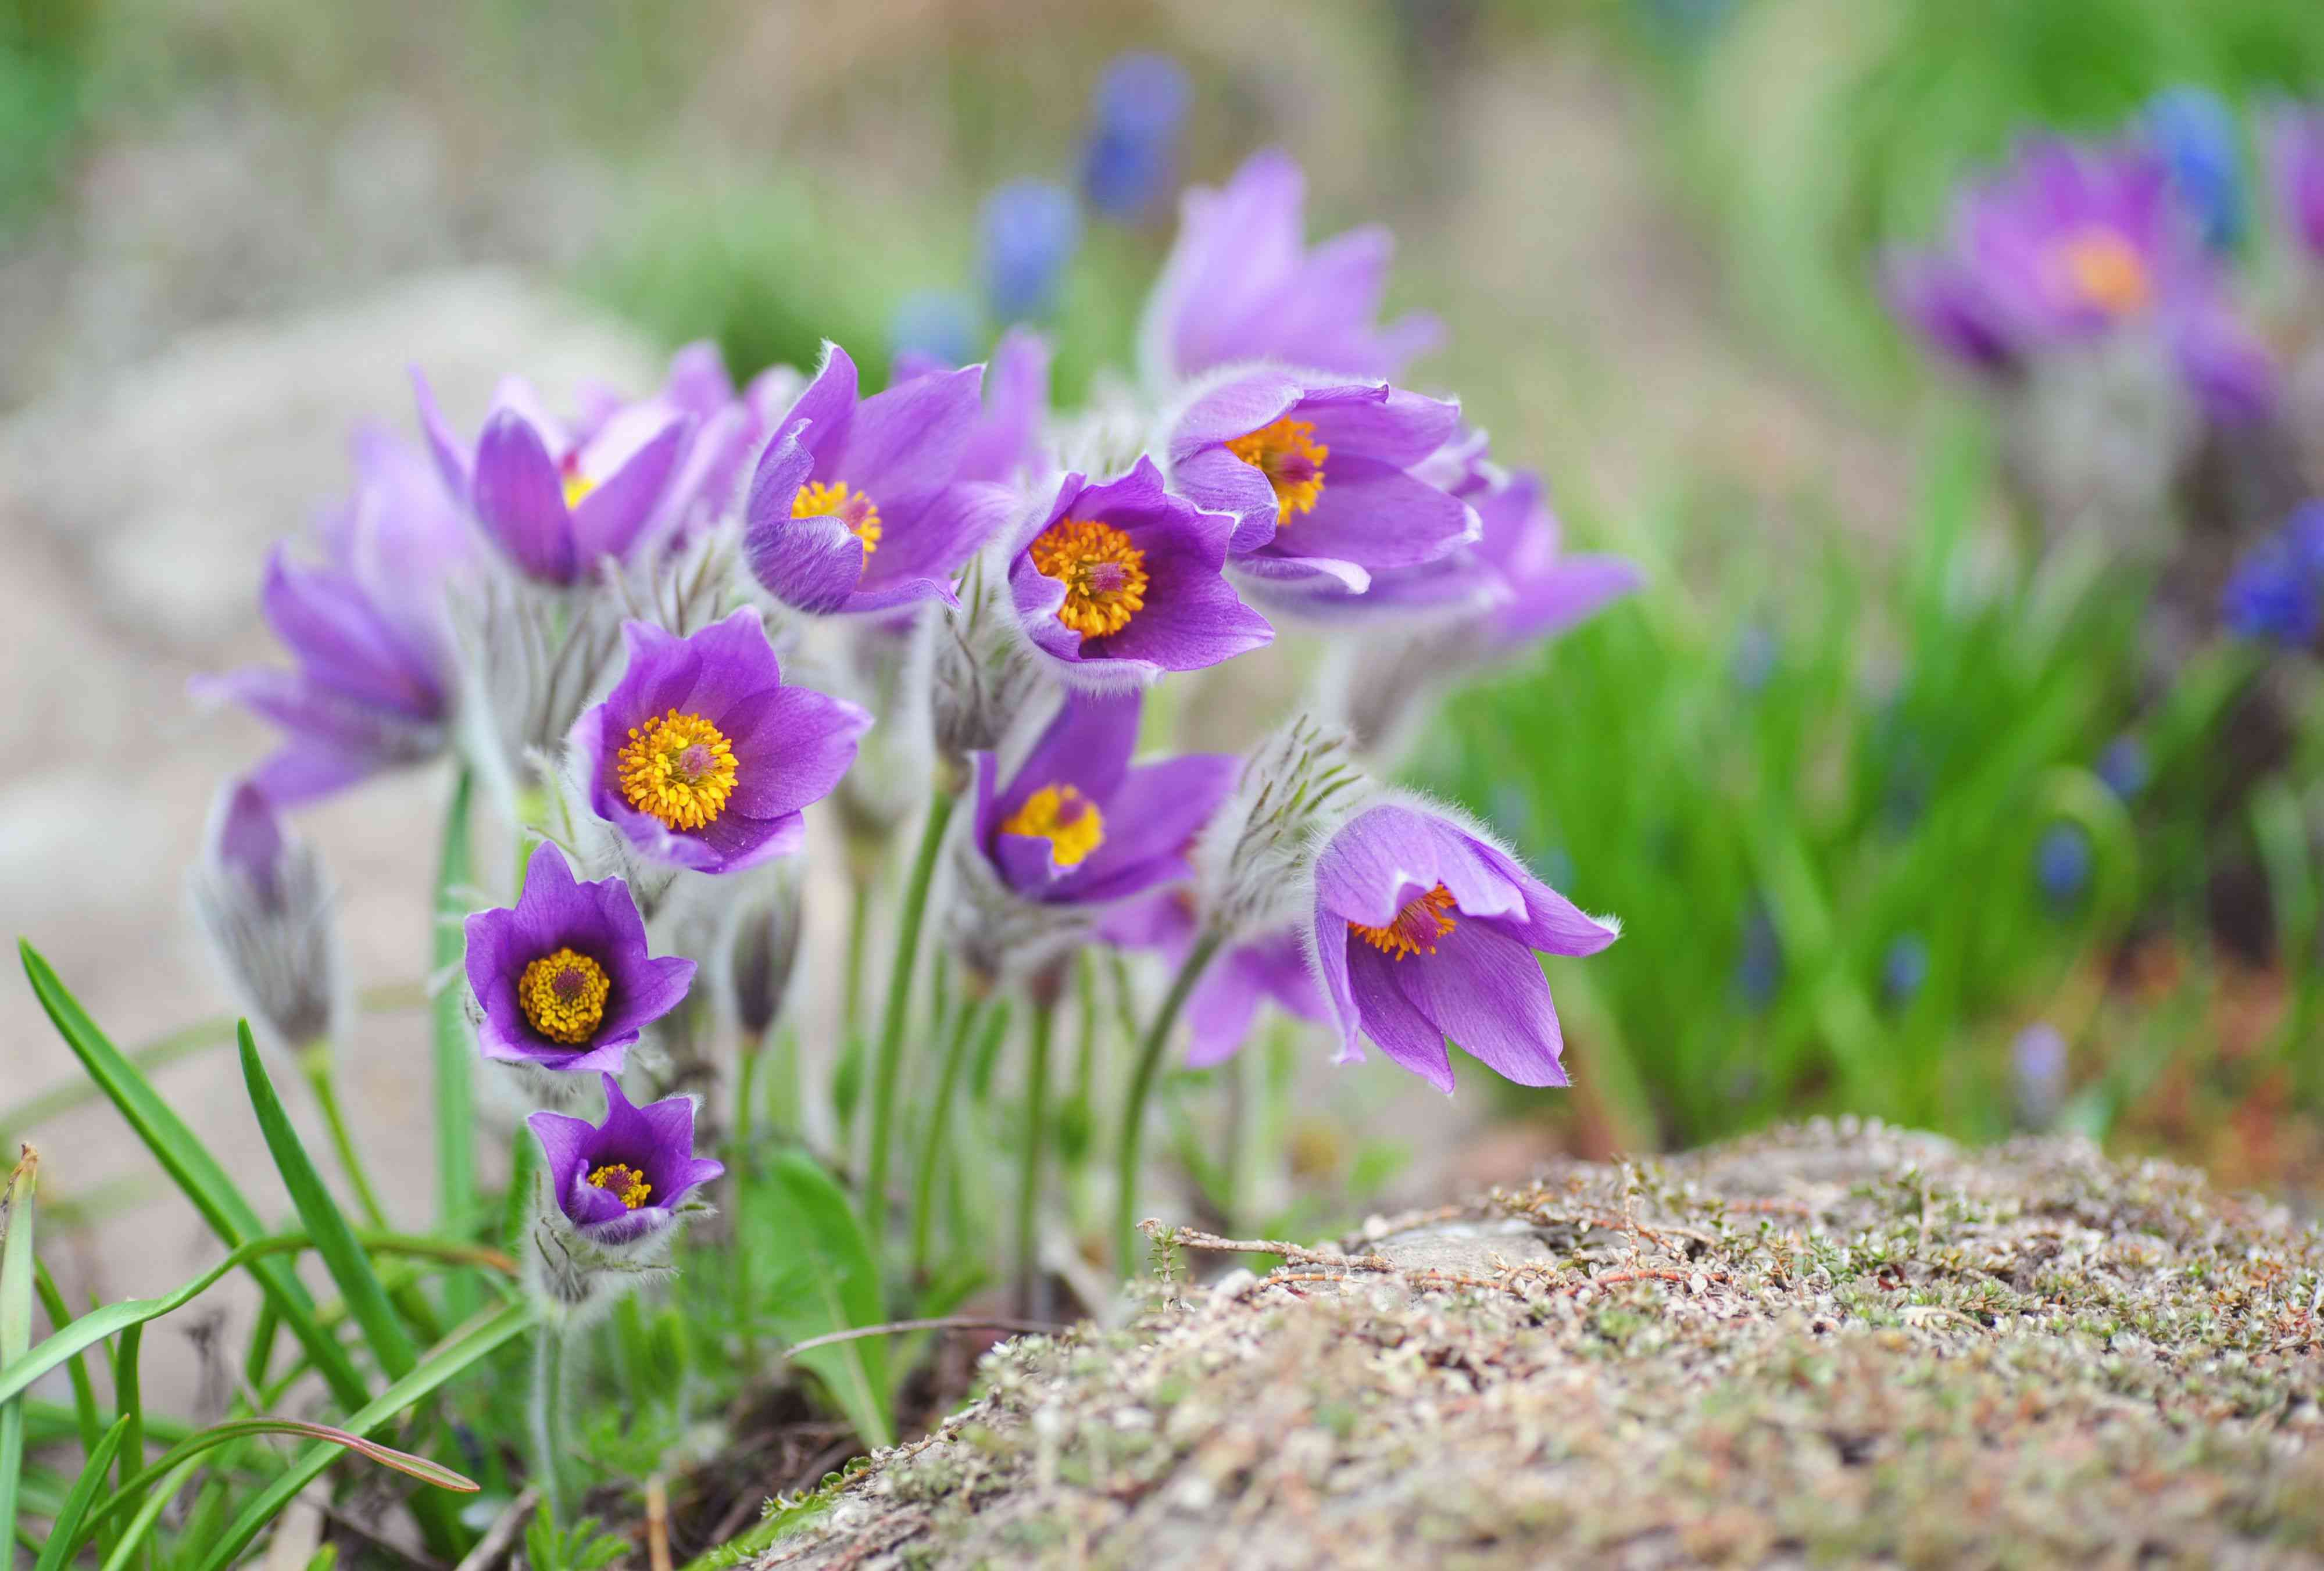 Pasque flowers with small purple petals grown in clumps near moss-covered rock